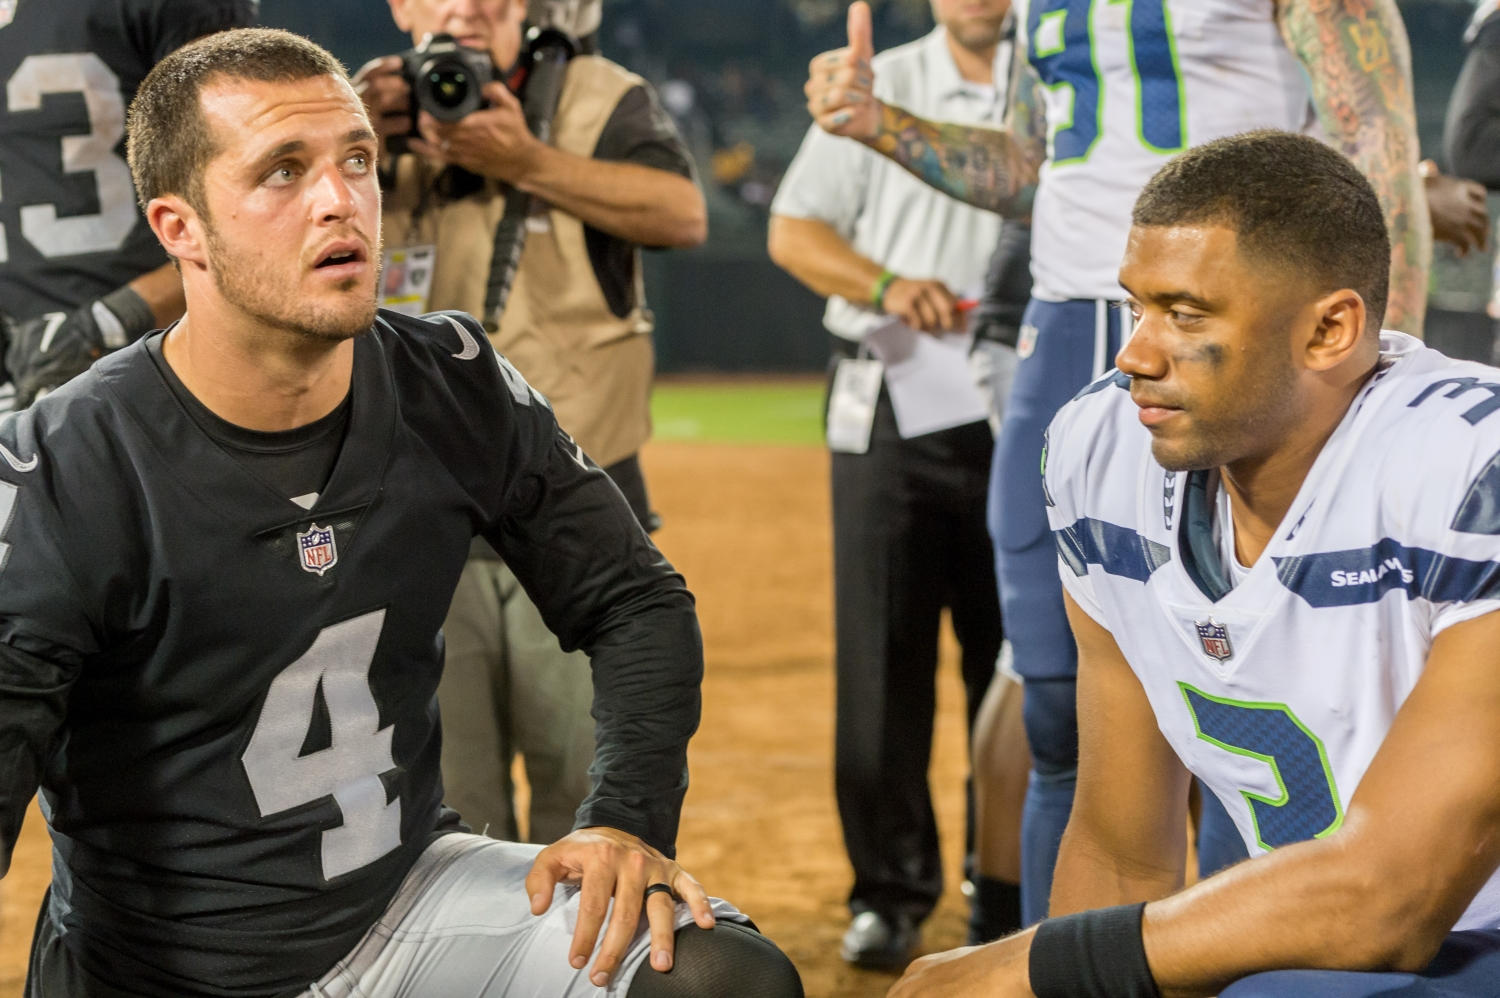 Russell Wilson Has Forced Derek Carr's Brother to Turn His Back on His Own Flesh and Blood